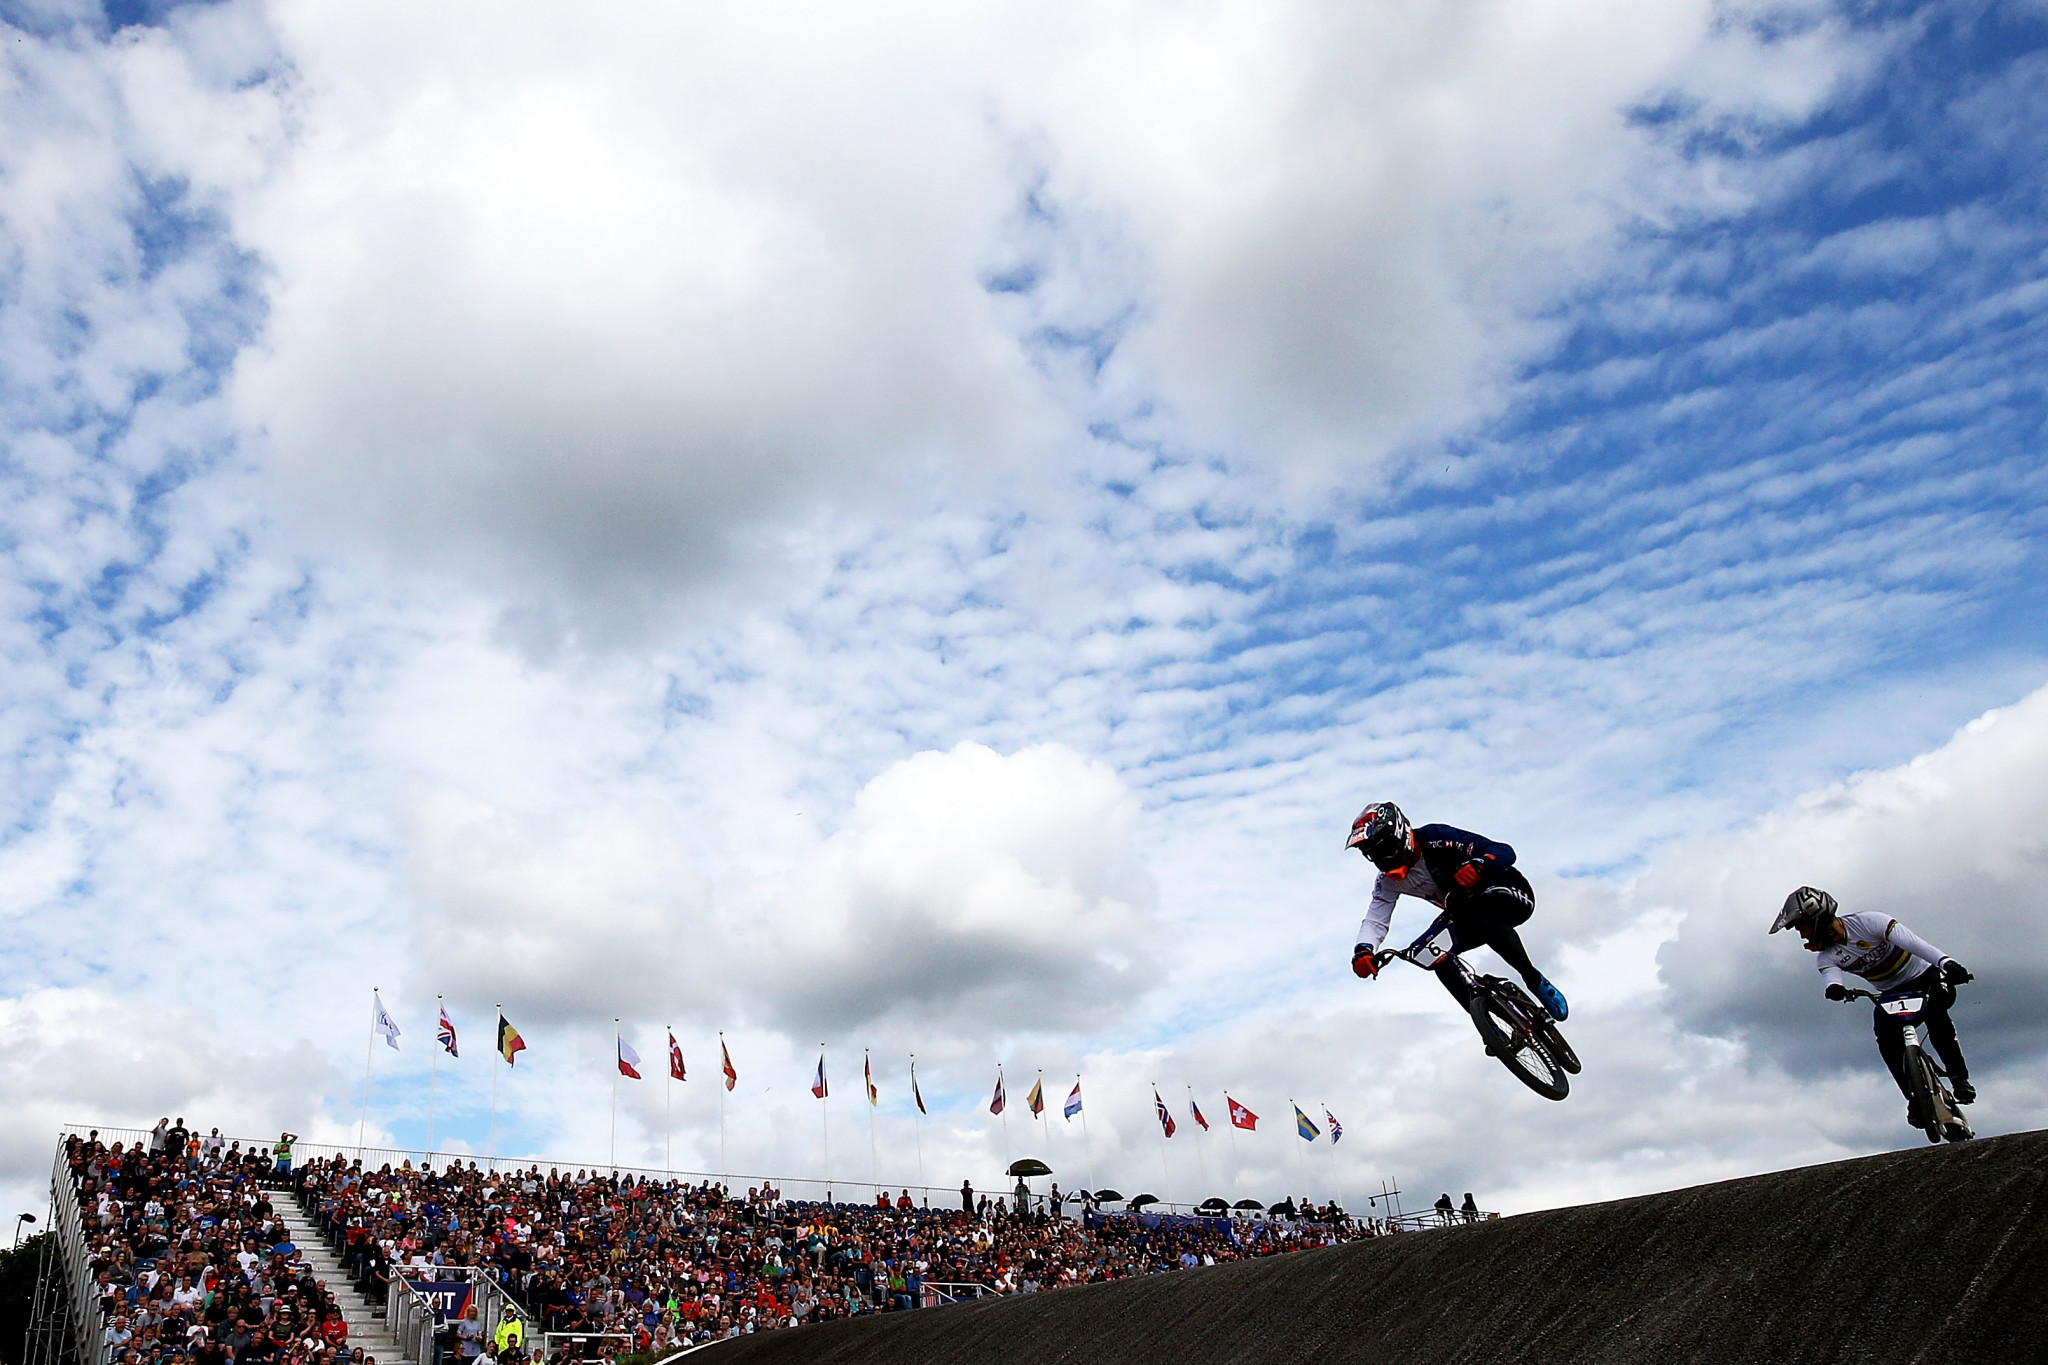 Evans and Smulders out to retain titles at BMX European Championships